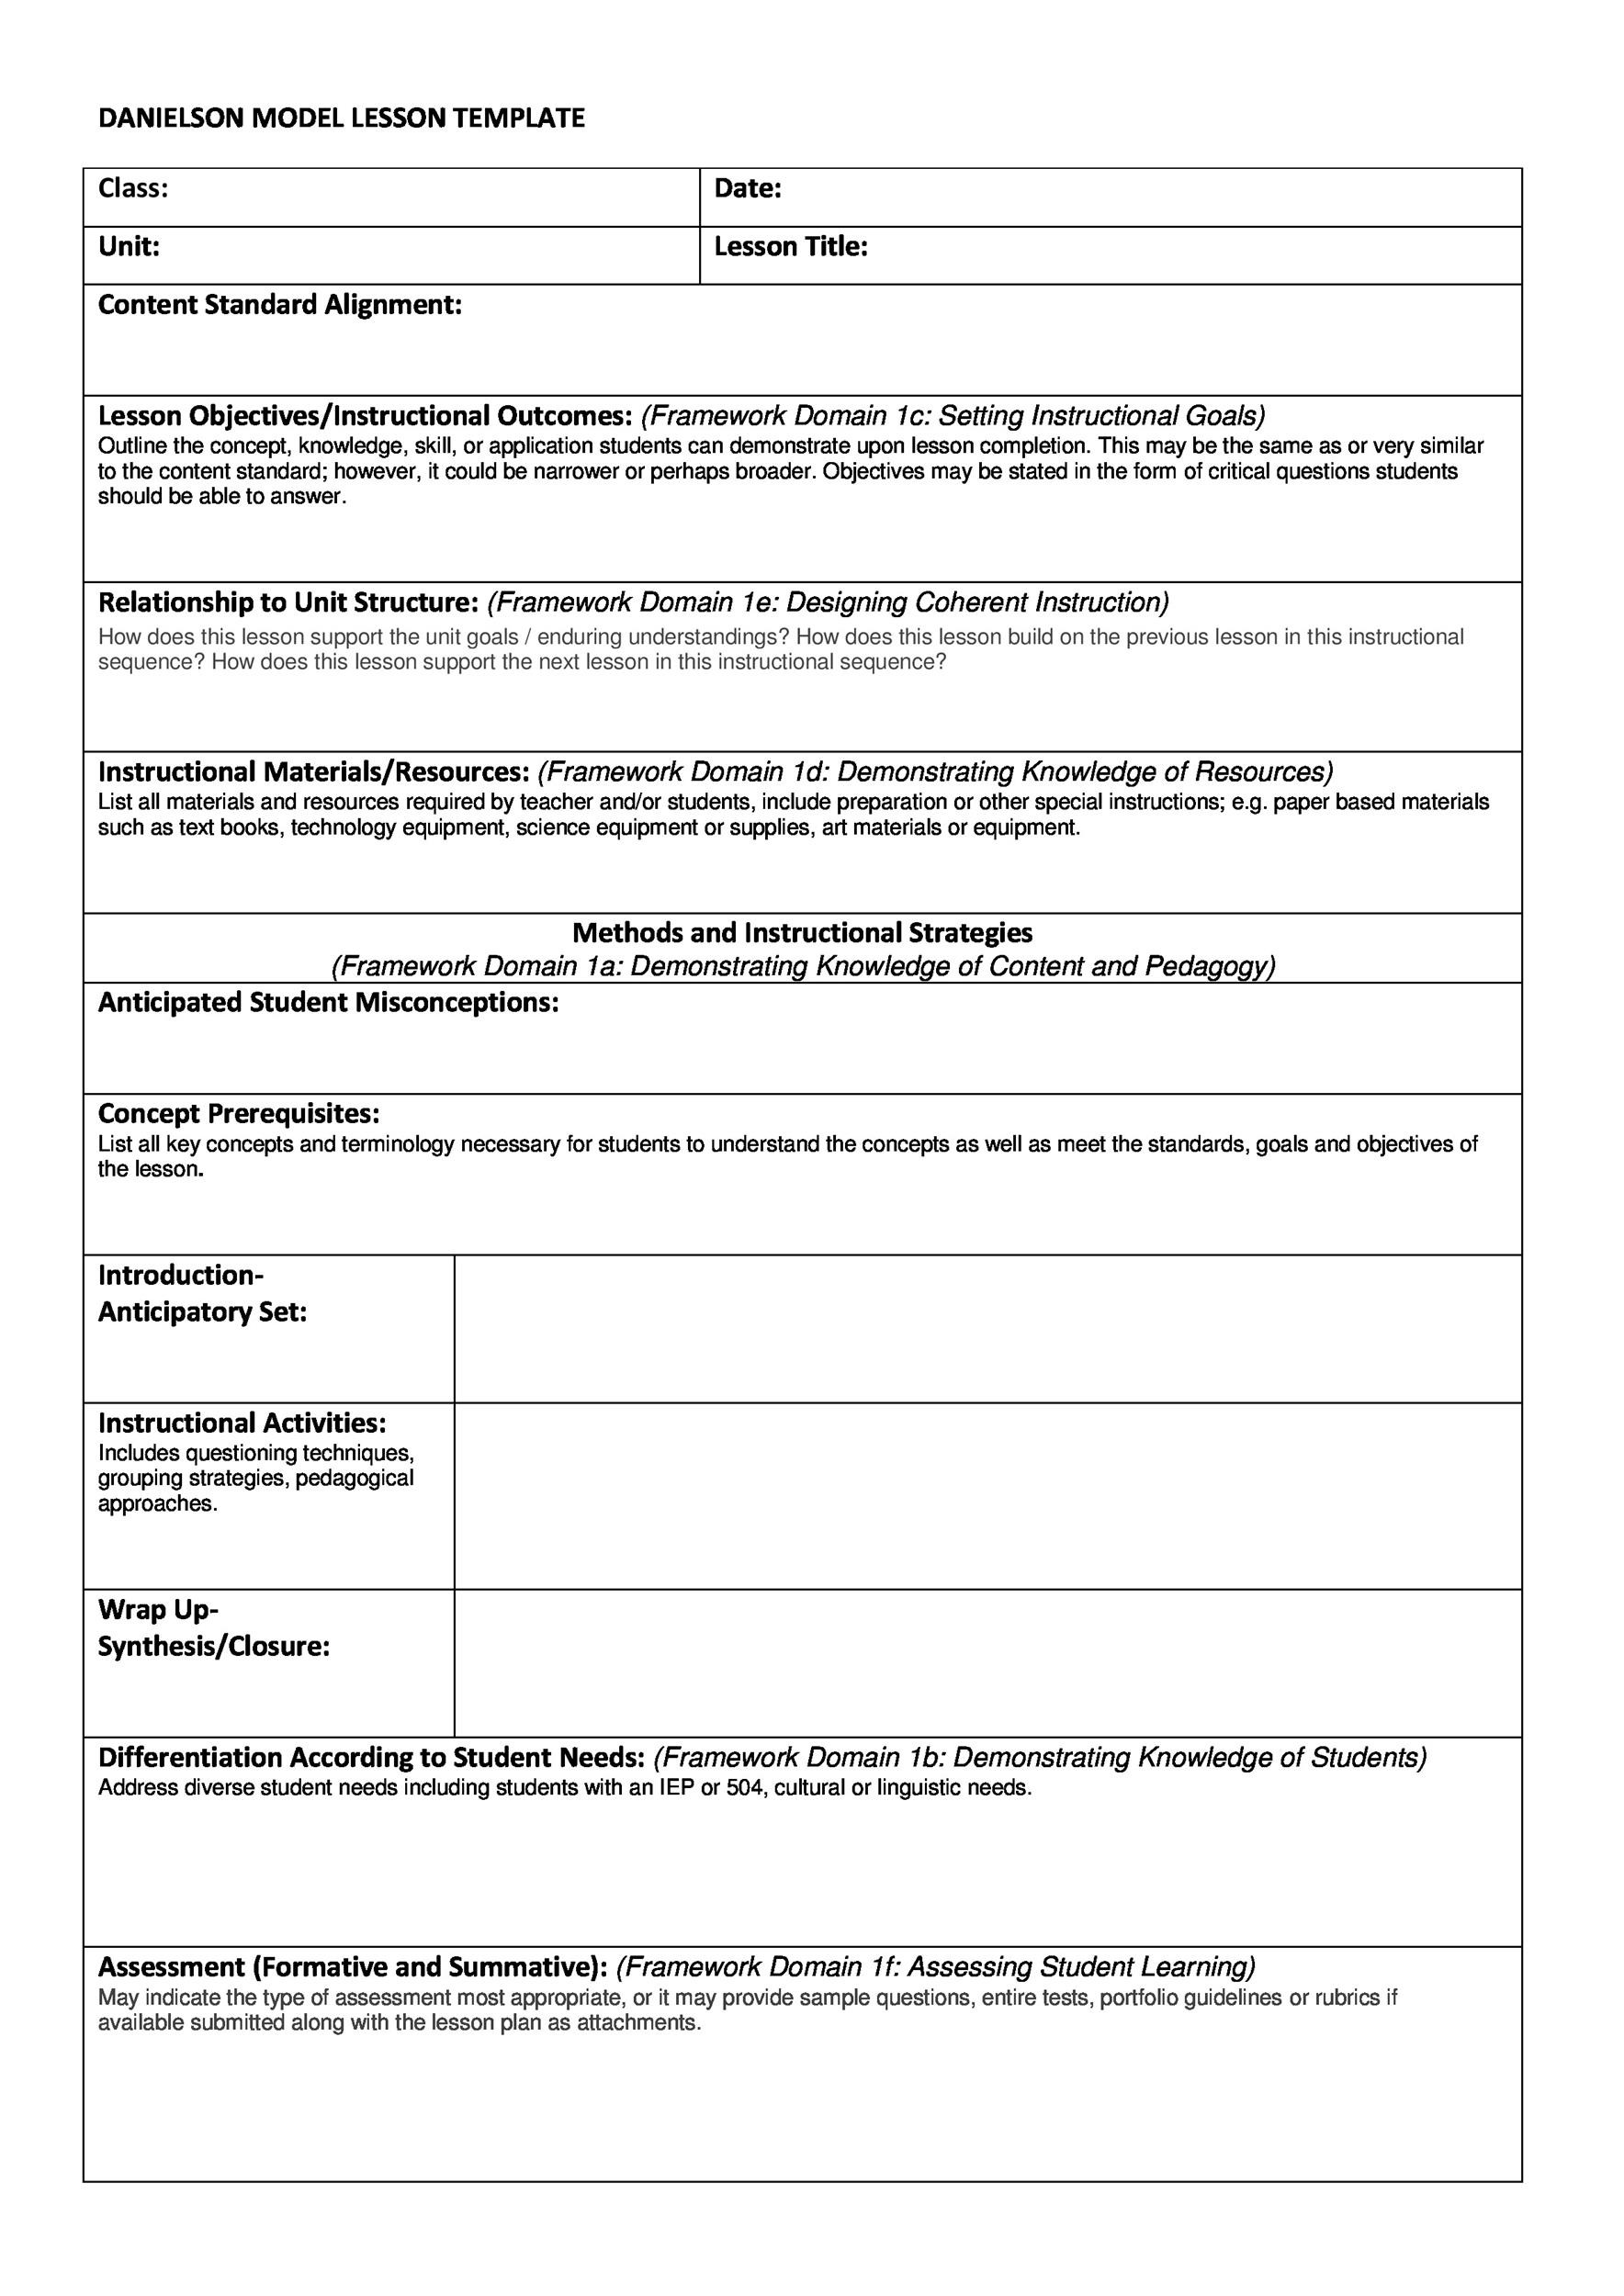 44 free lesson plan templates common core preschool weekly for Nursing lesson plan template